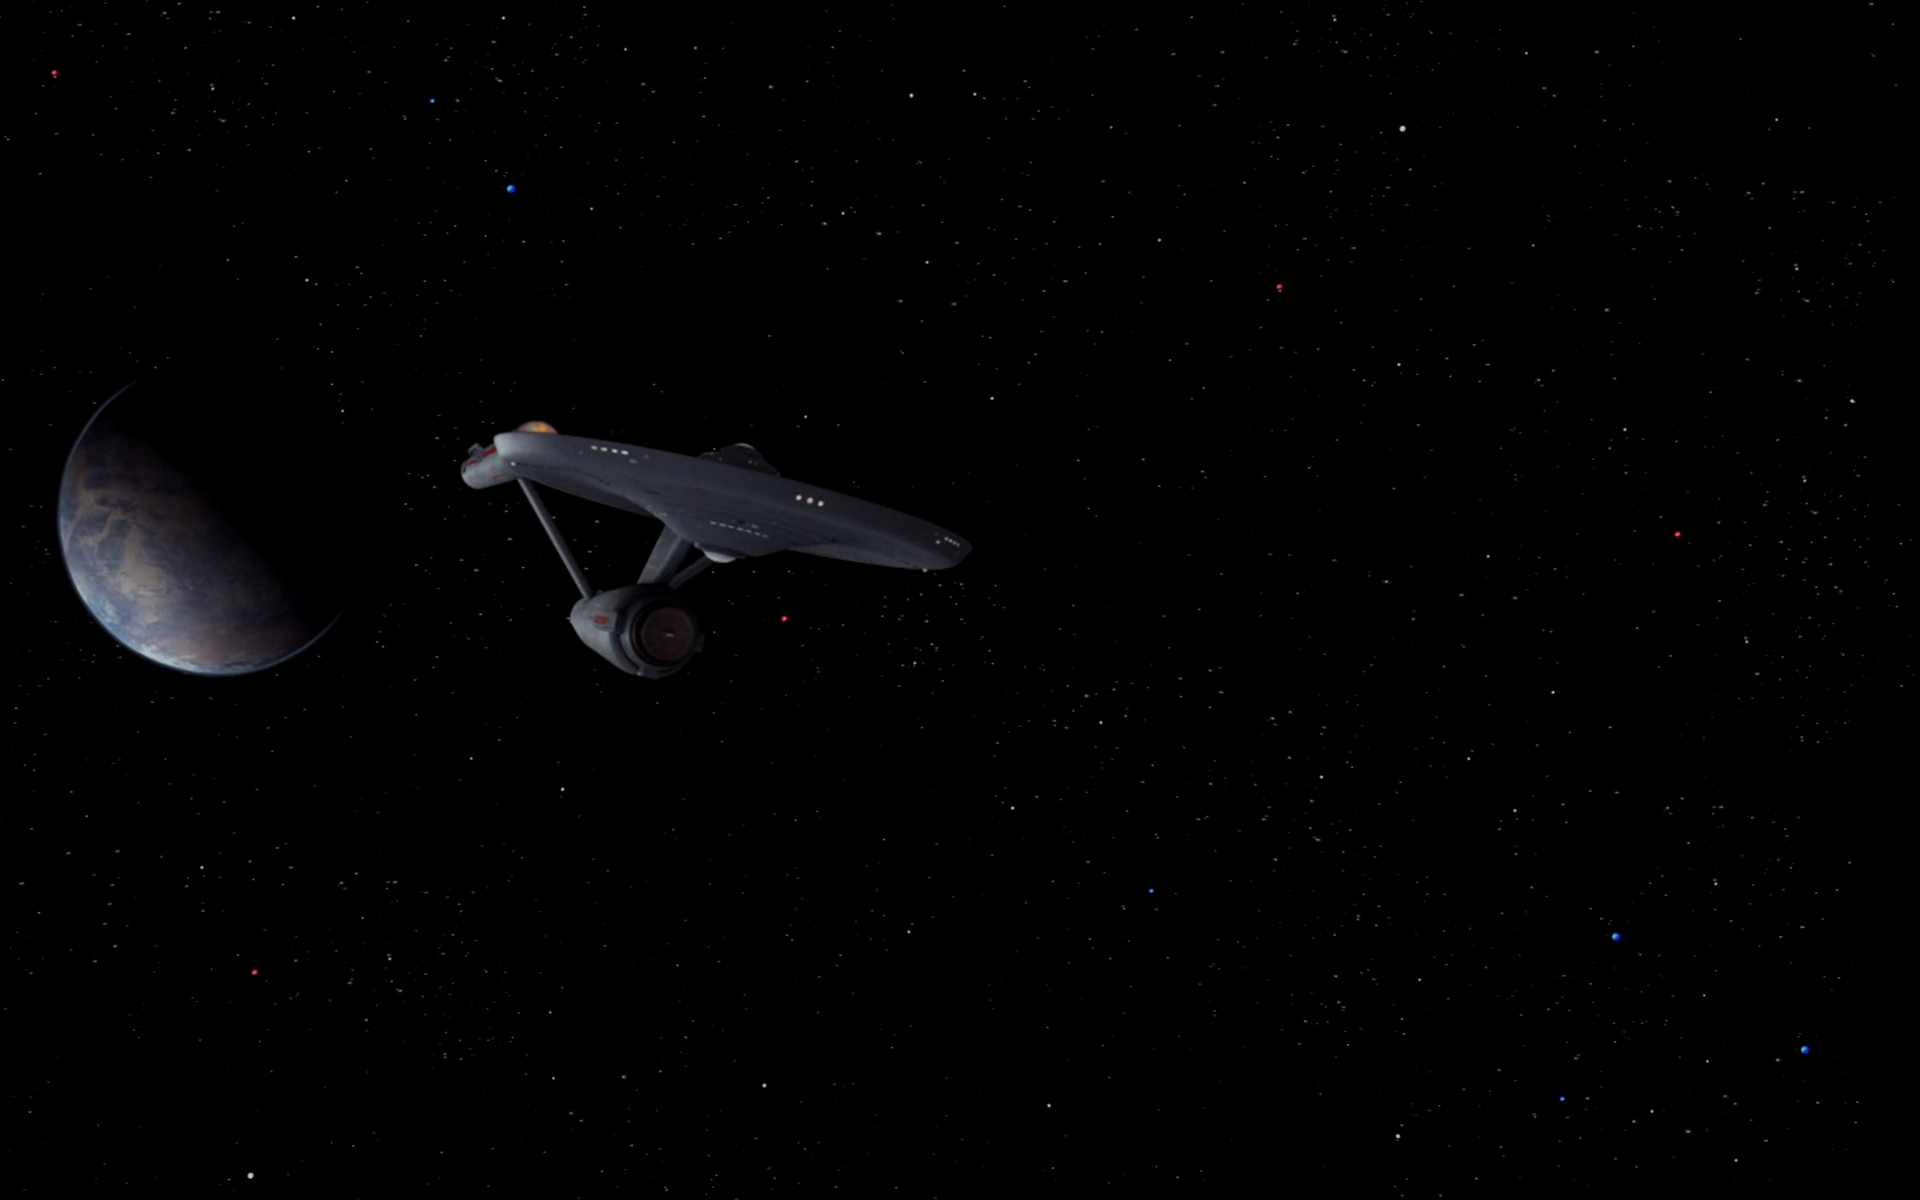 kethinov - star trek original series wallpapers